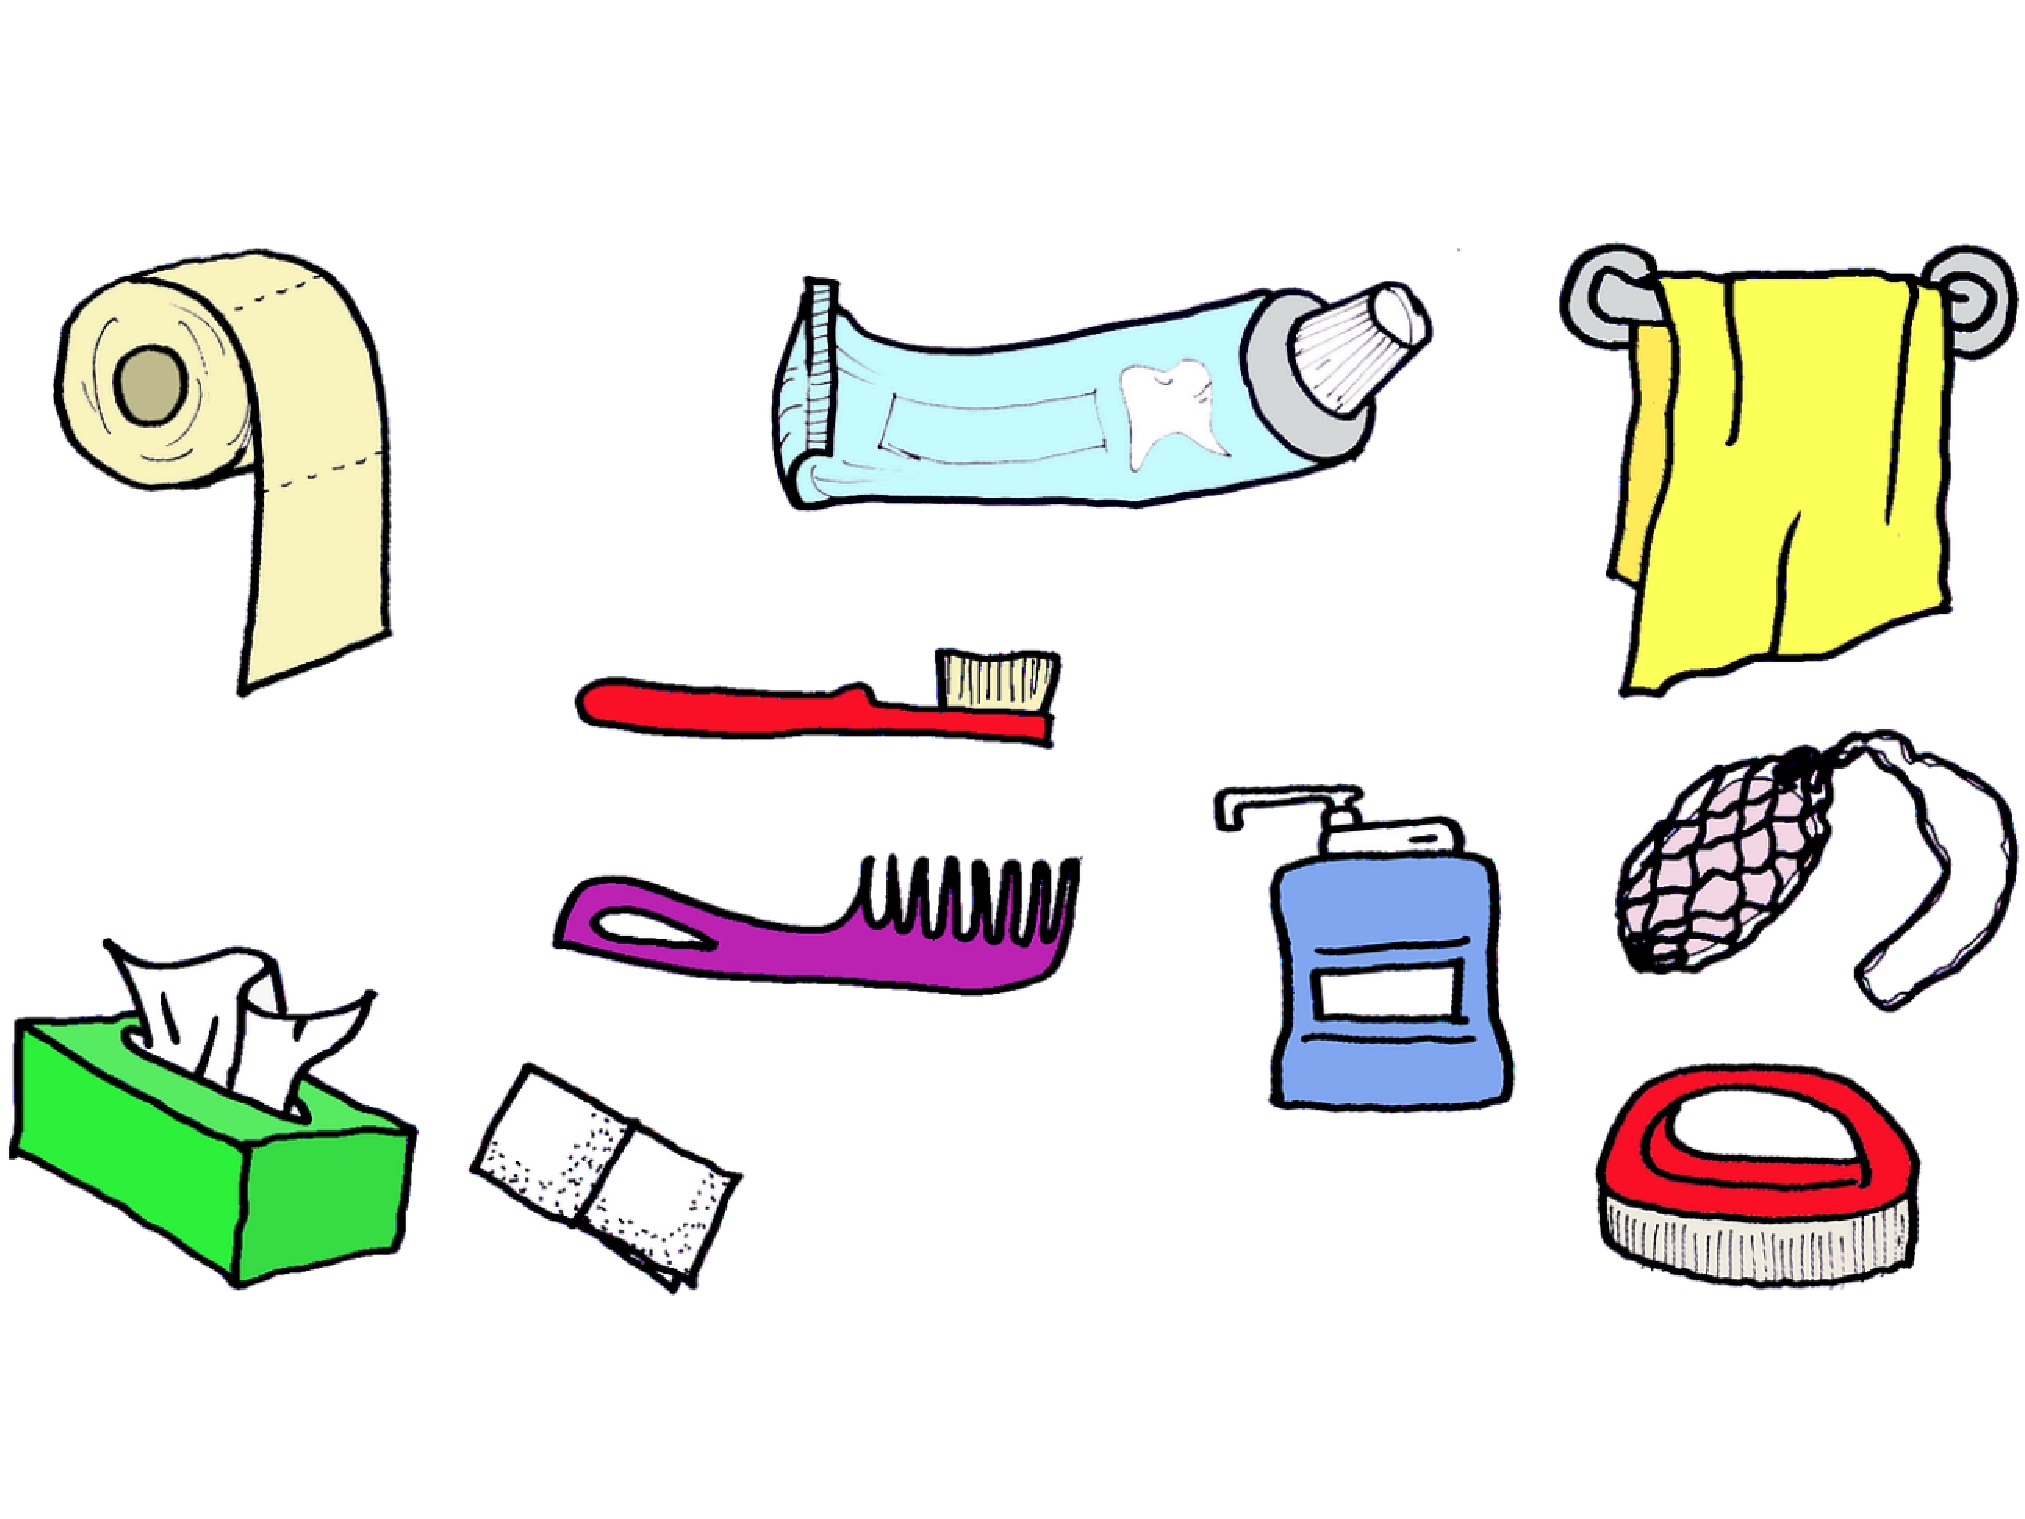 Nails clipart imprope hygiene. Top good habits for